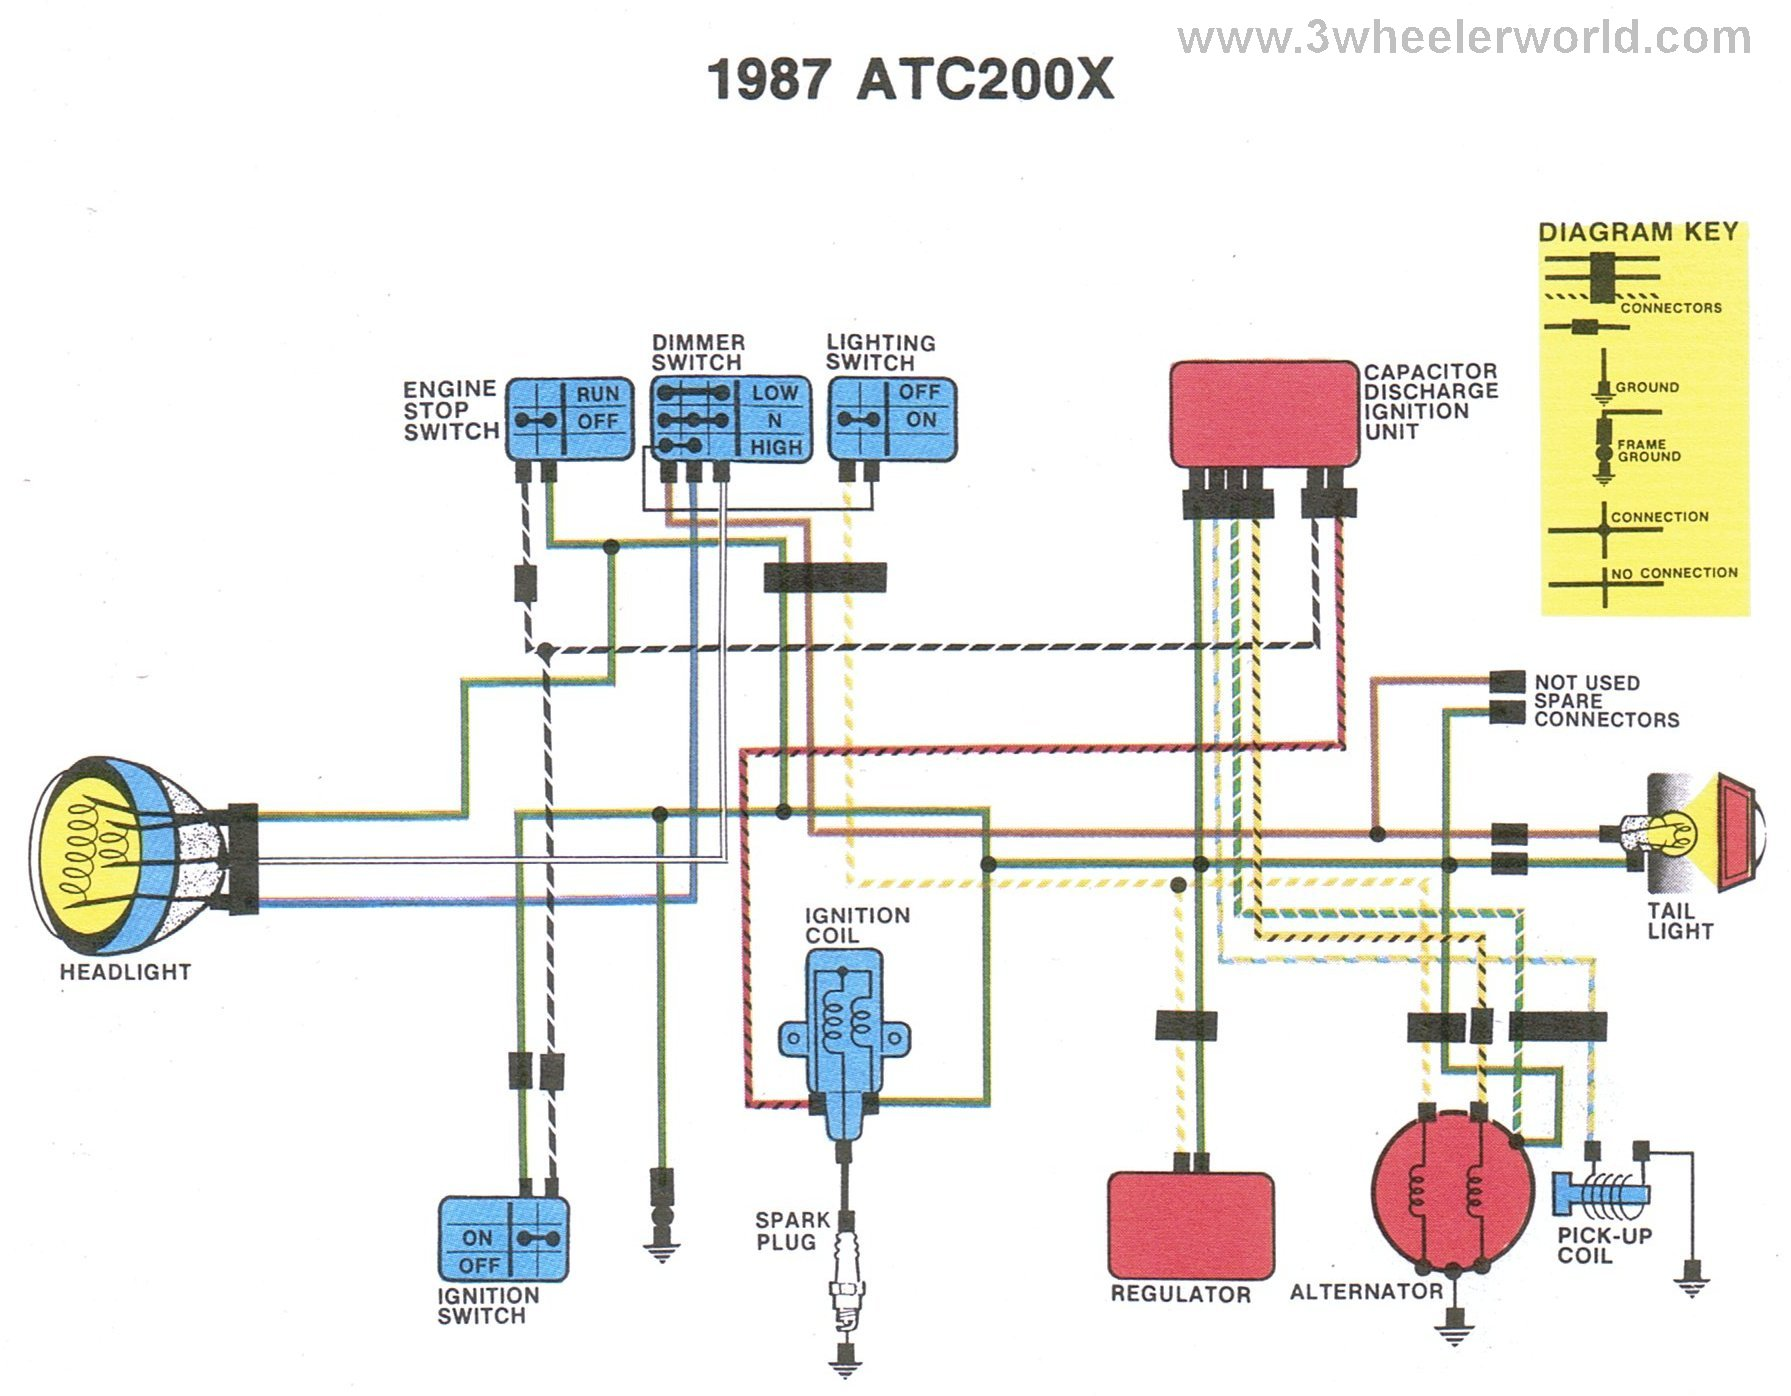 ATC200Xx87 3 wheeler world tech help honda wiring diagrams